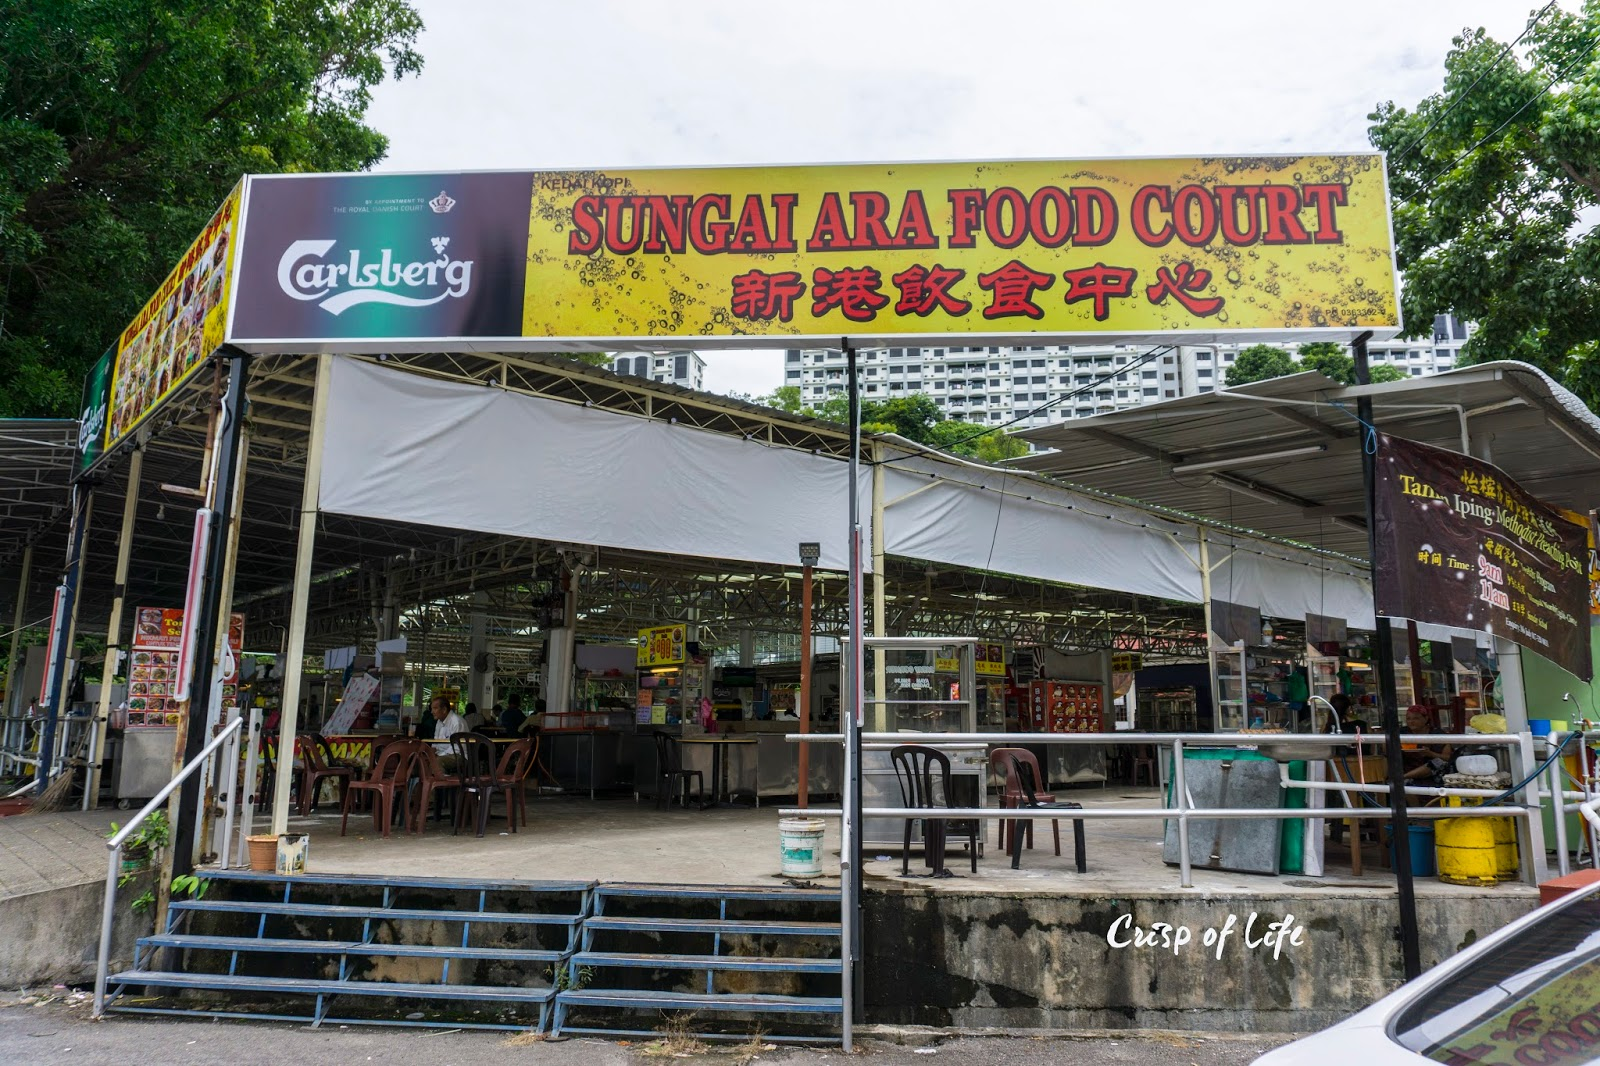 clearance prices new arrivals good service Nice Food @ Sungai Ara Food Court, Penang - Crisp of Life